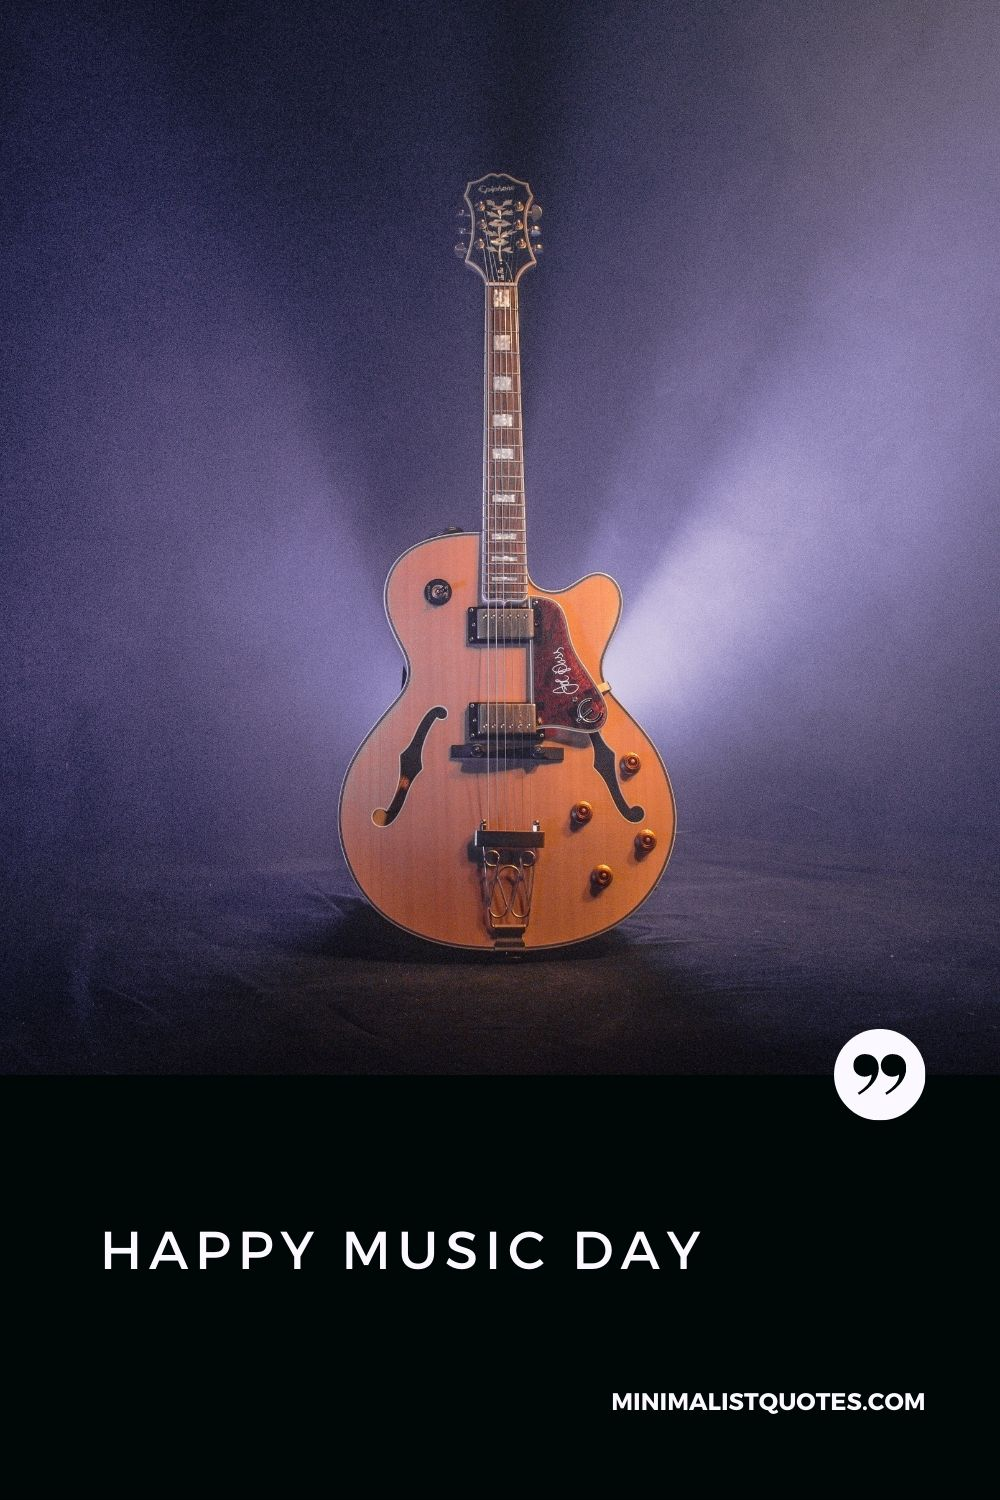 Happy World music day HD Poster Image to share with your loved ones: #guitarimage